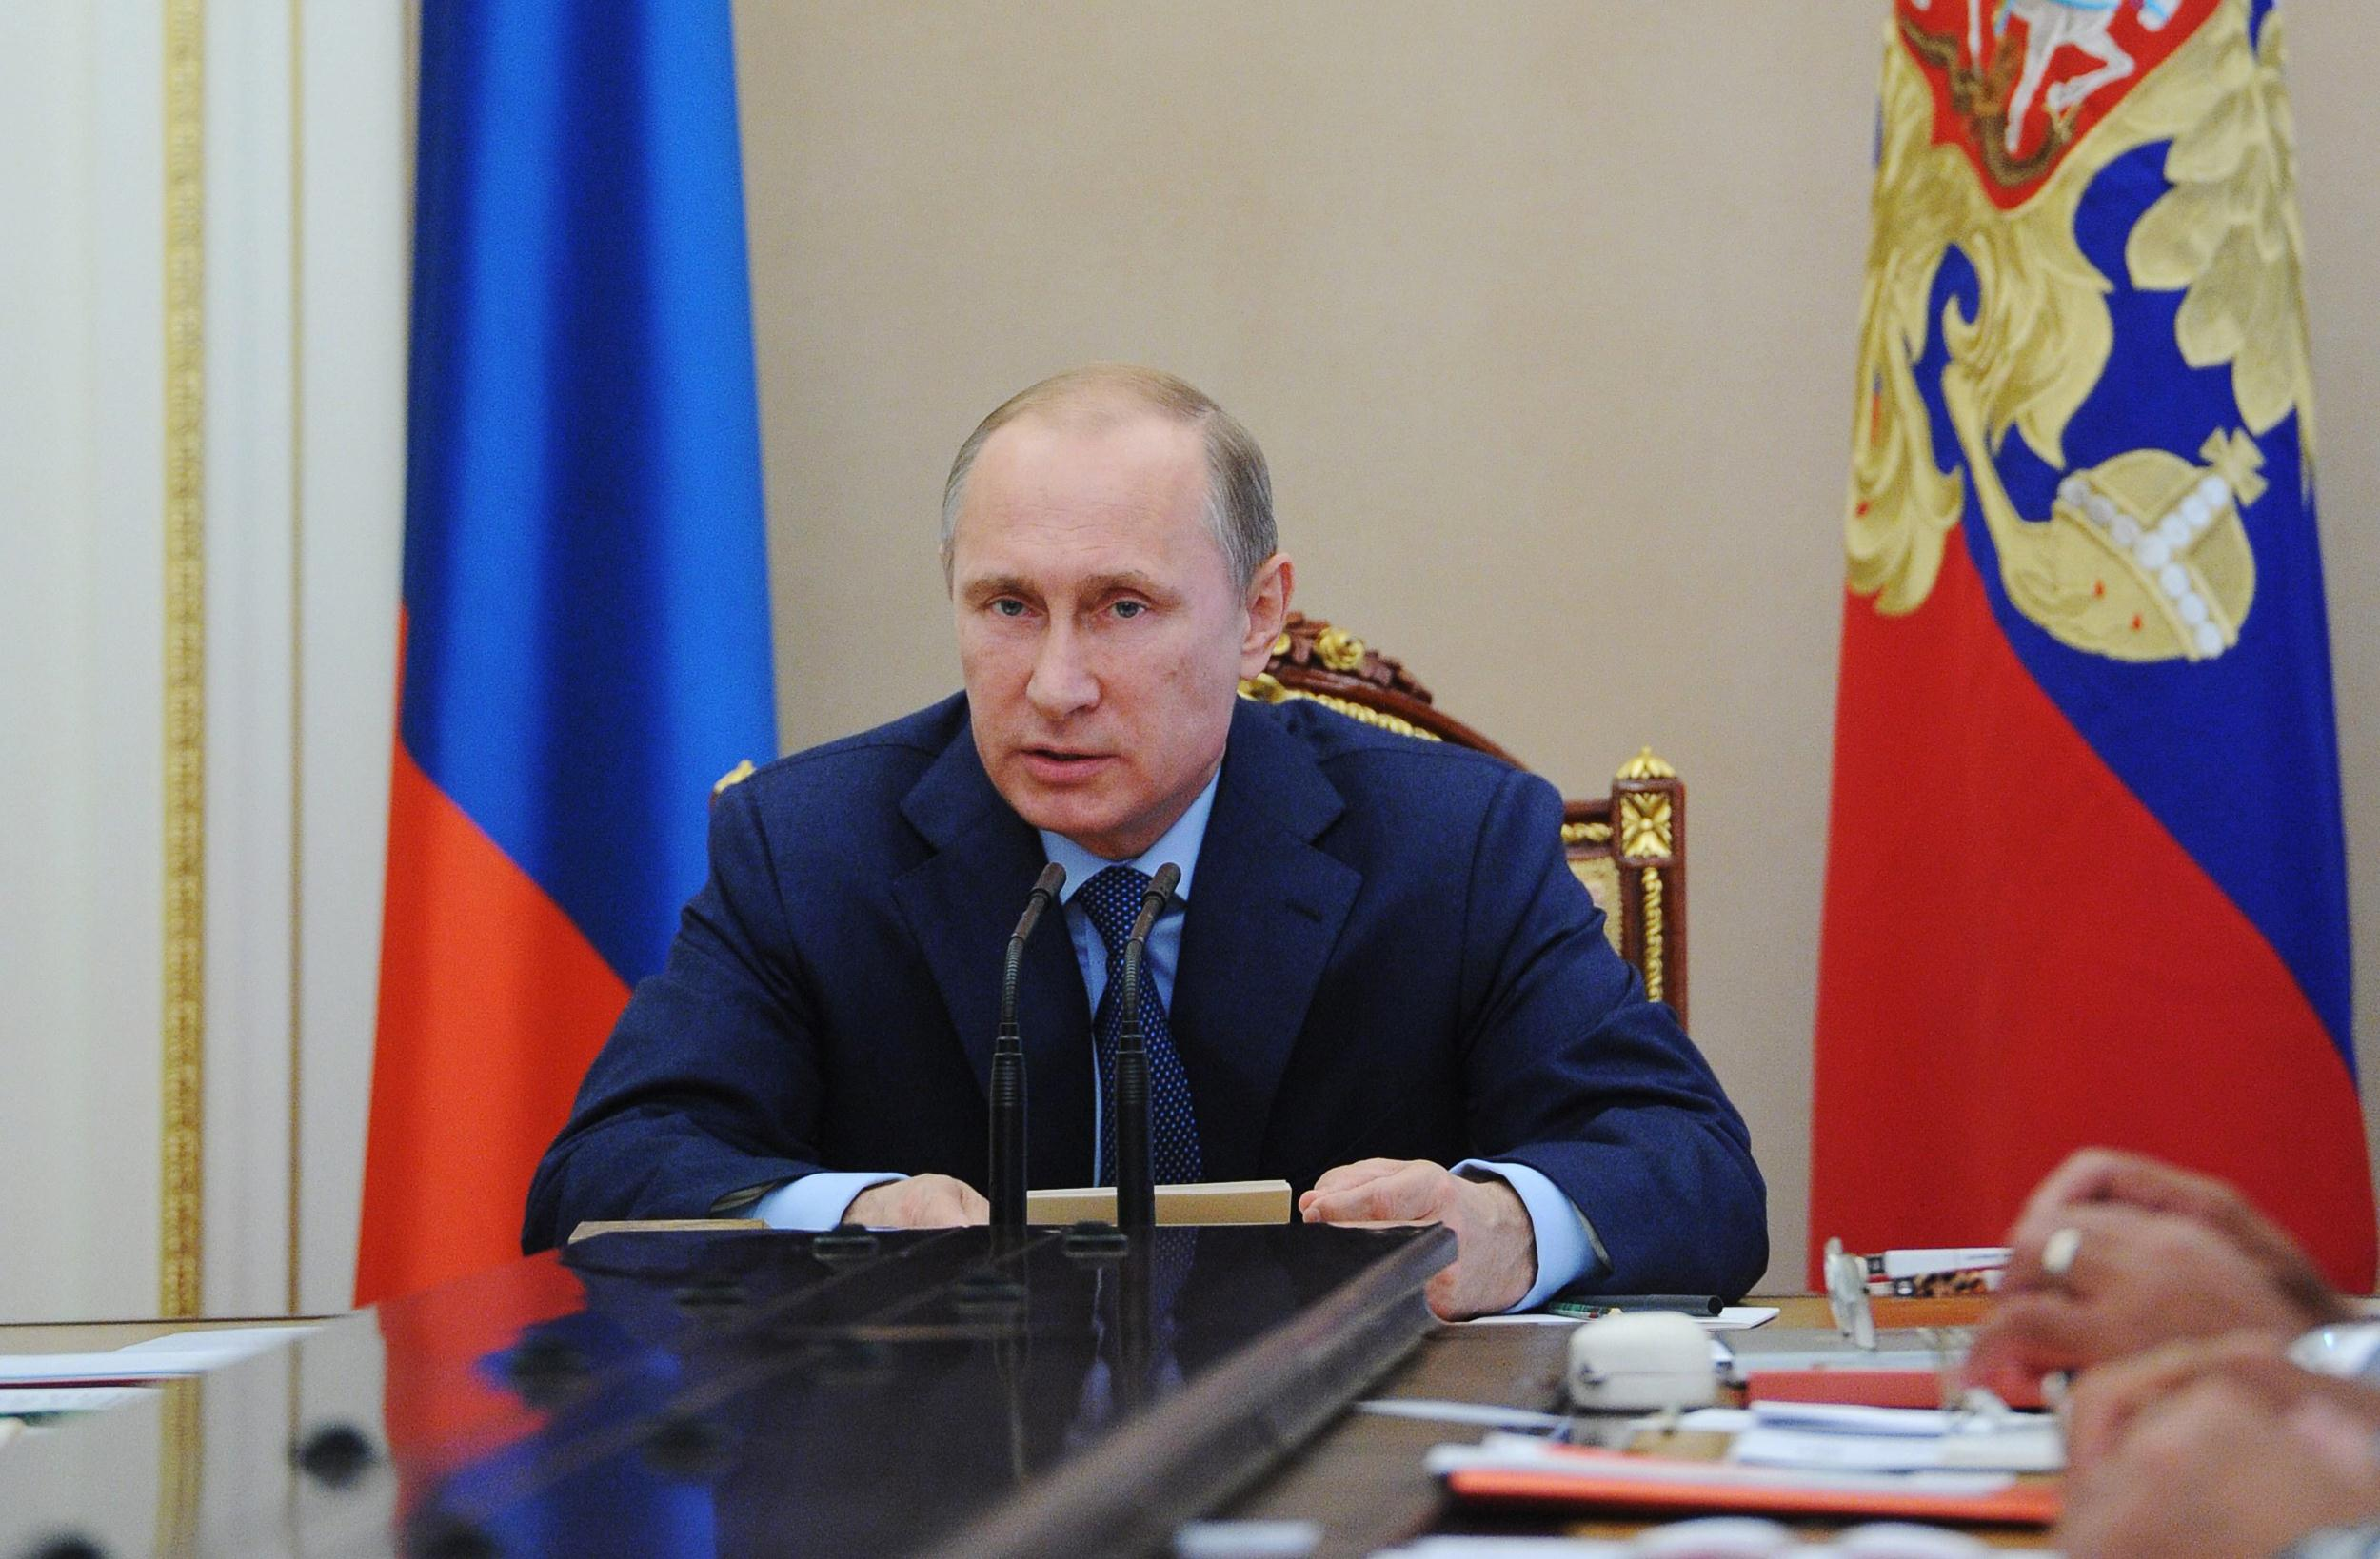 Image: Vladimir Putin attend in Russian Security Council meeting